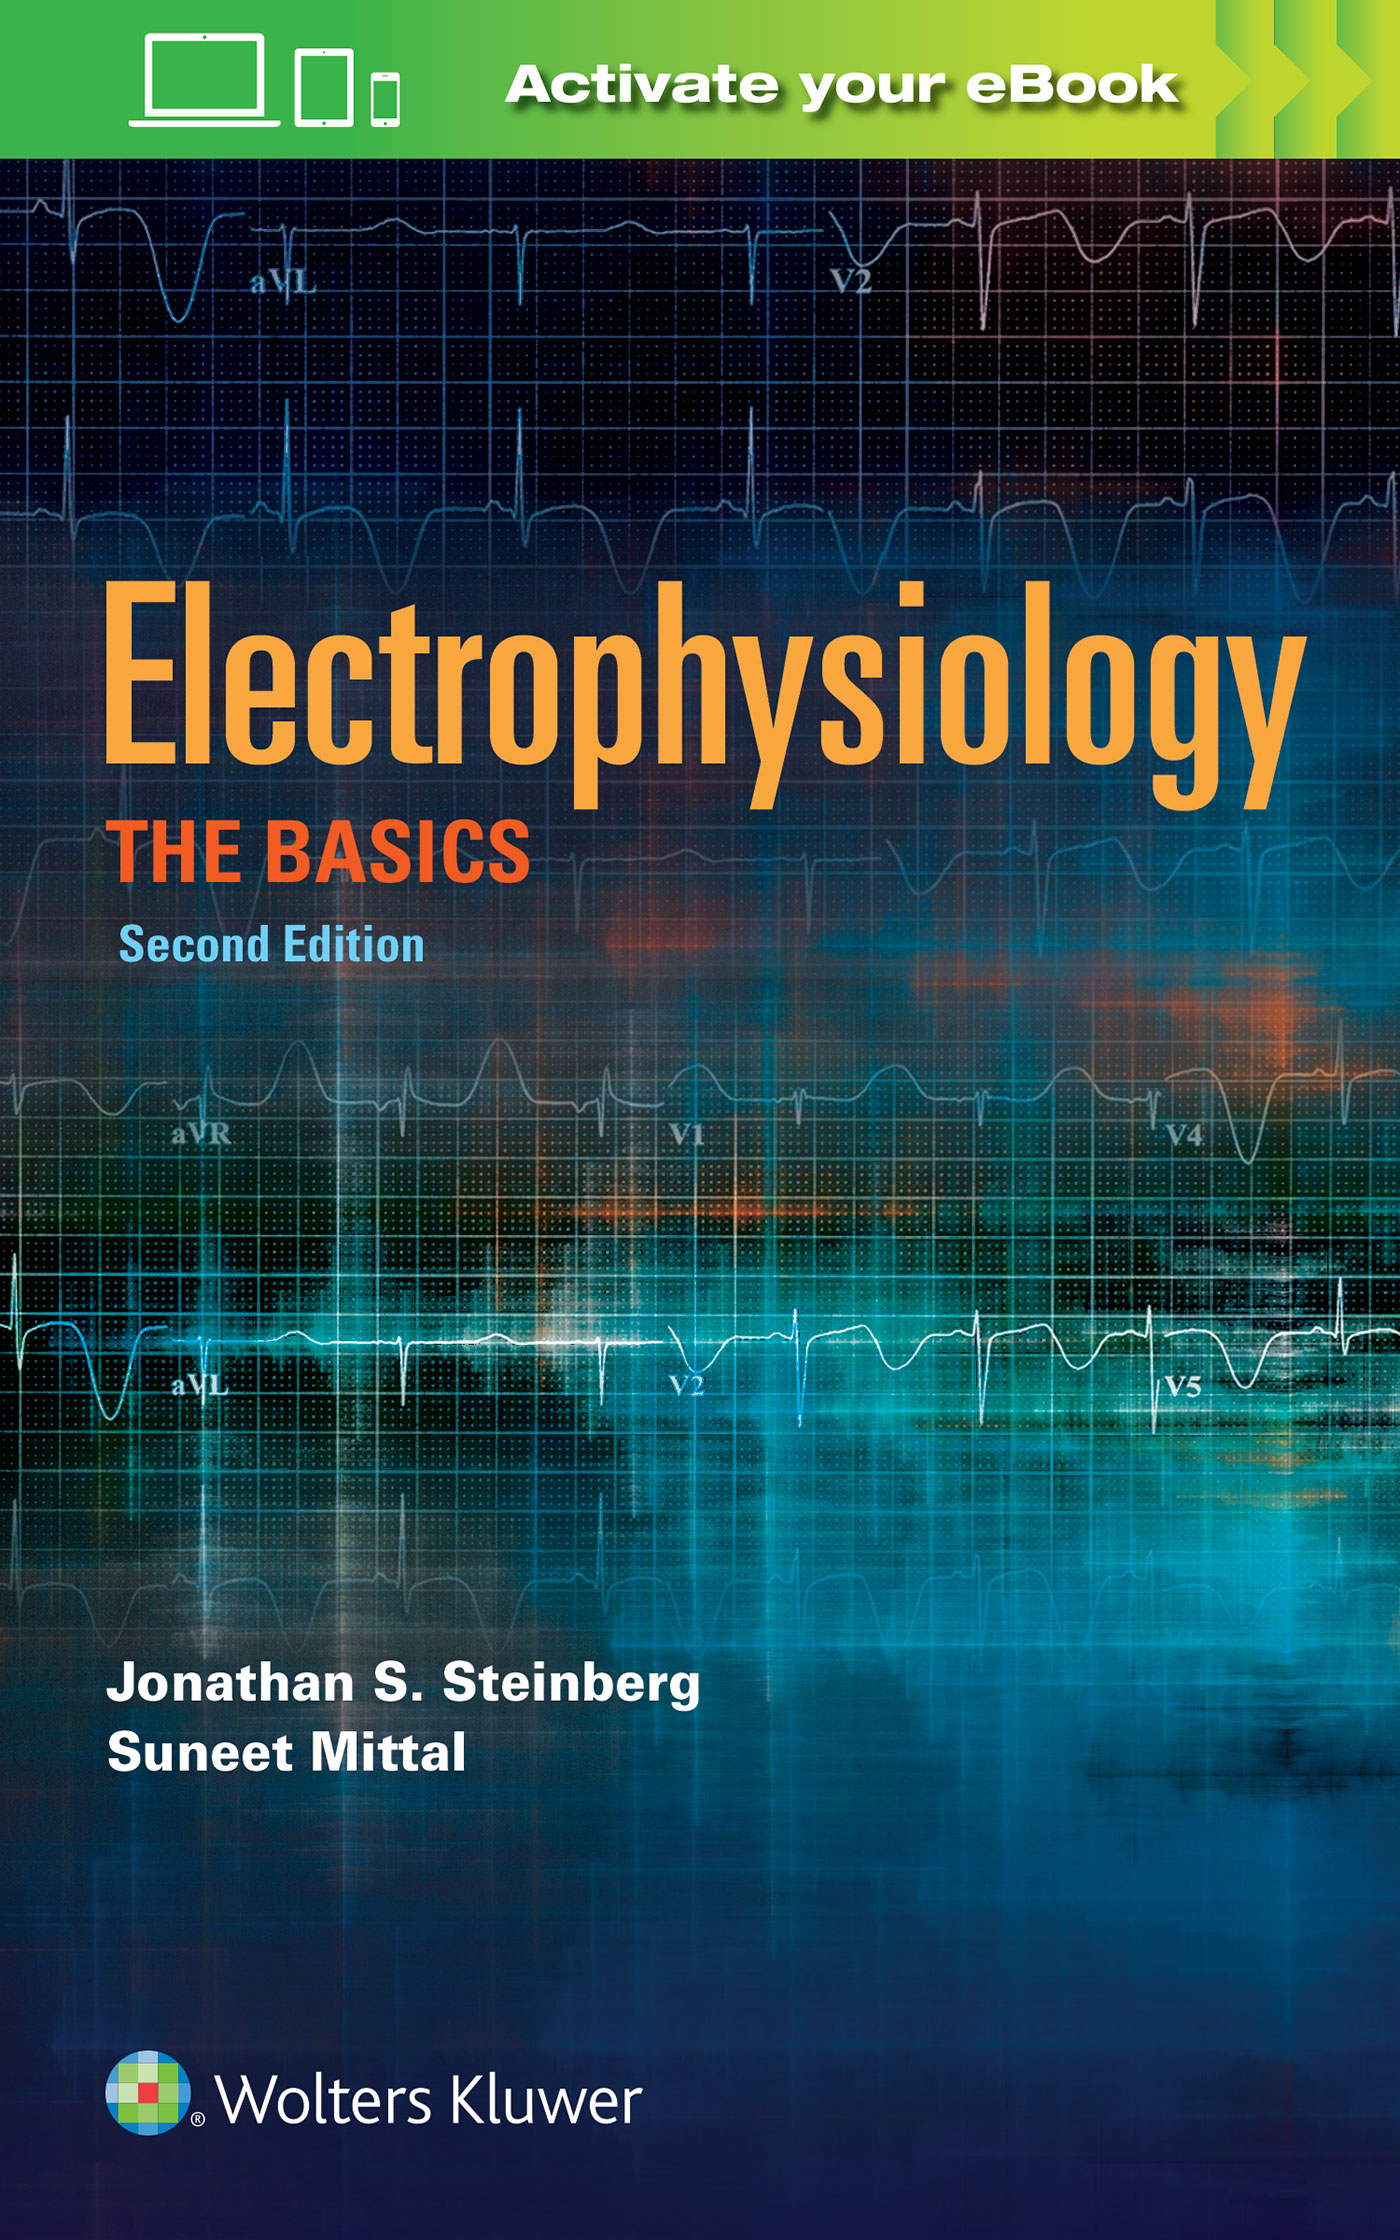 Electrophysiology: The Basics, A Companion Guide for the Cardiology Fellow During the EP Rotation